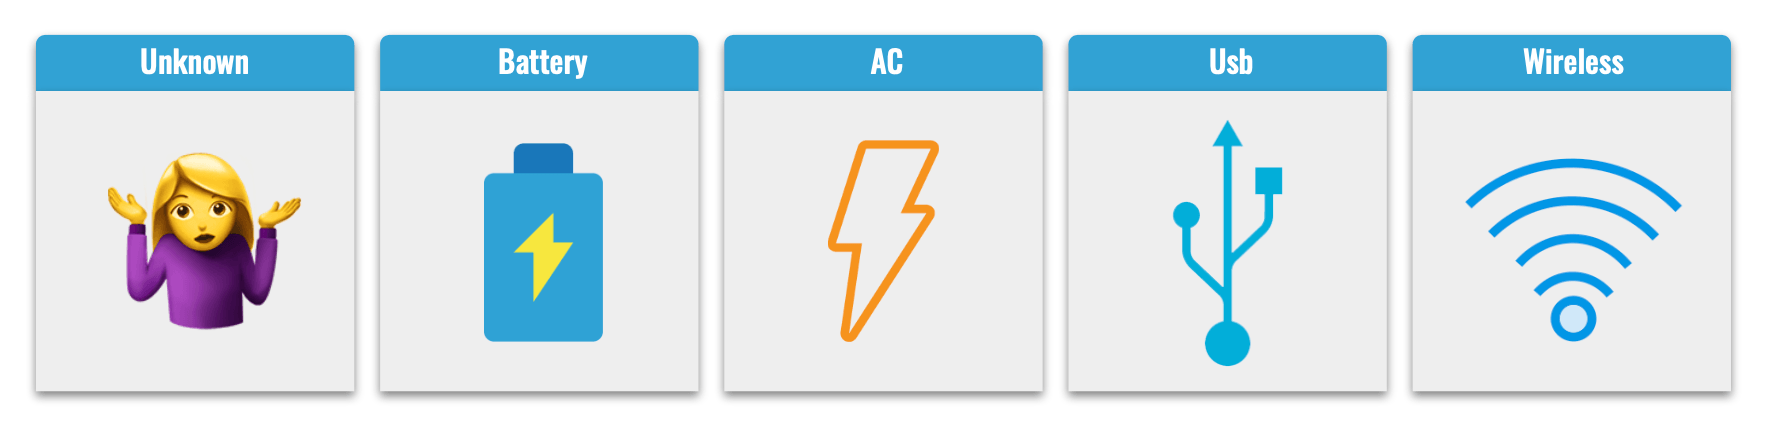 Five labels with an icon: Unknown has a shrug emoji, Battery has a blue battery with a yellow lightning bolt, AC has an orange outline of a lightning bolt, Usb has the USB icon, and Wireless has the standard wireless icon.